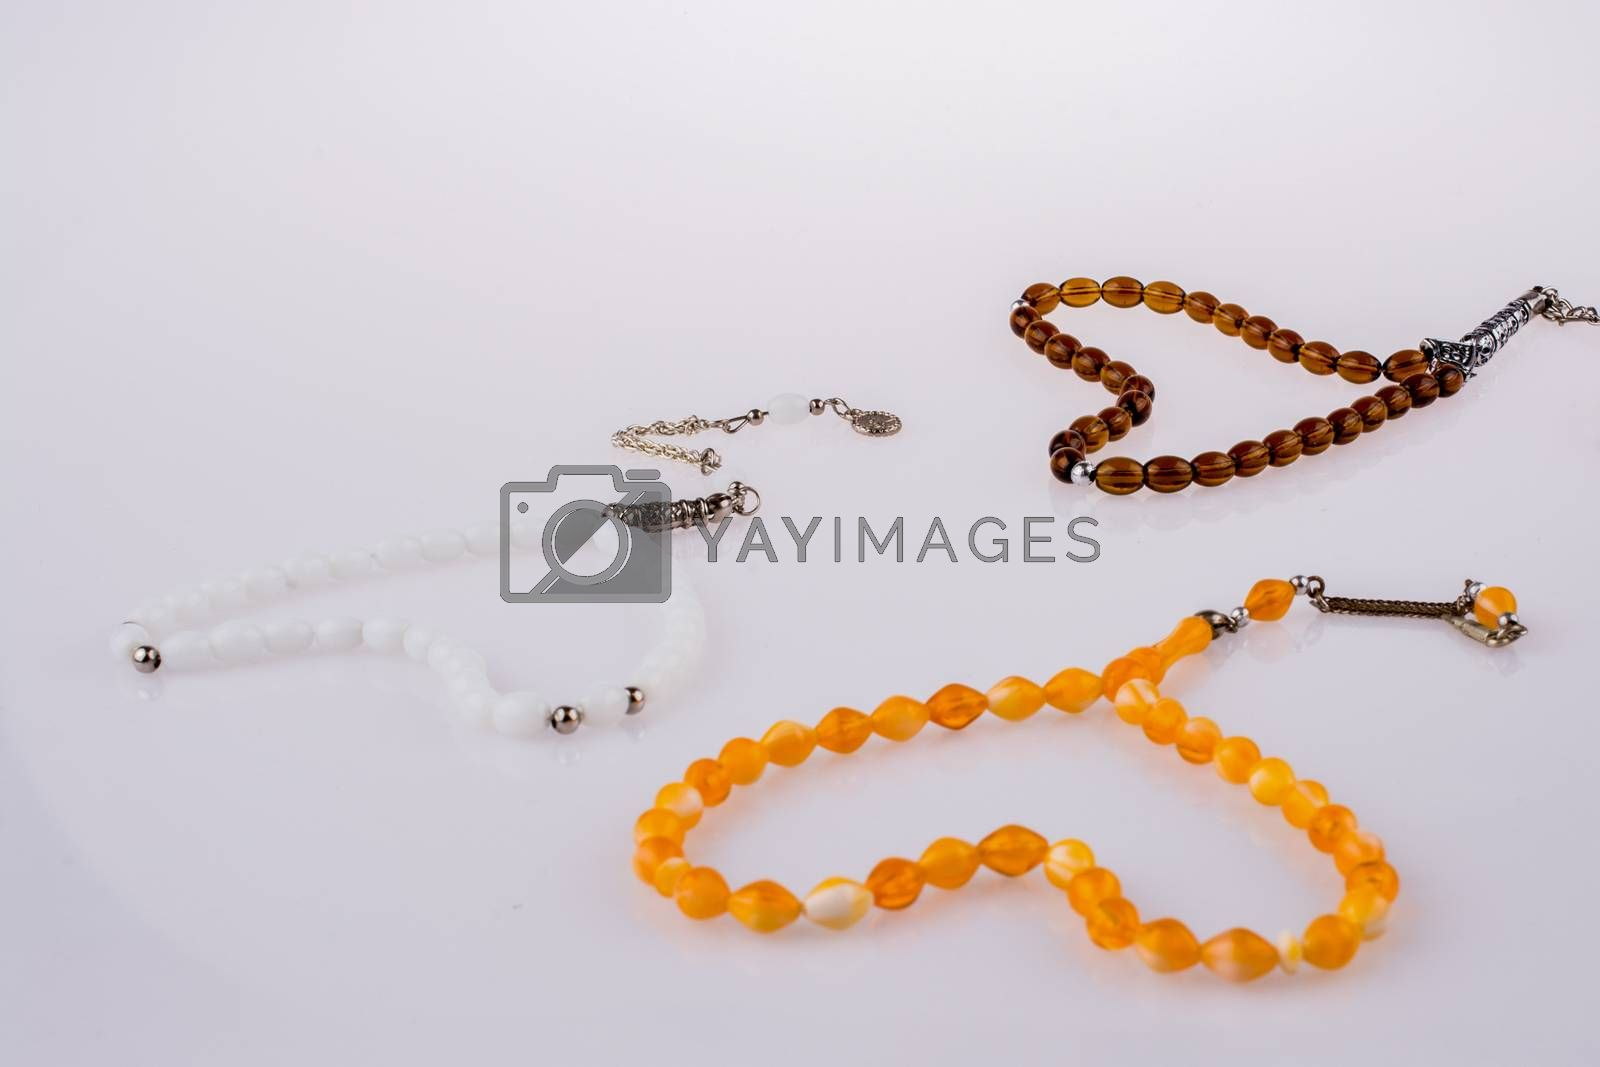 Set of praying beads of various colors